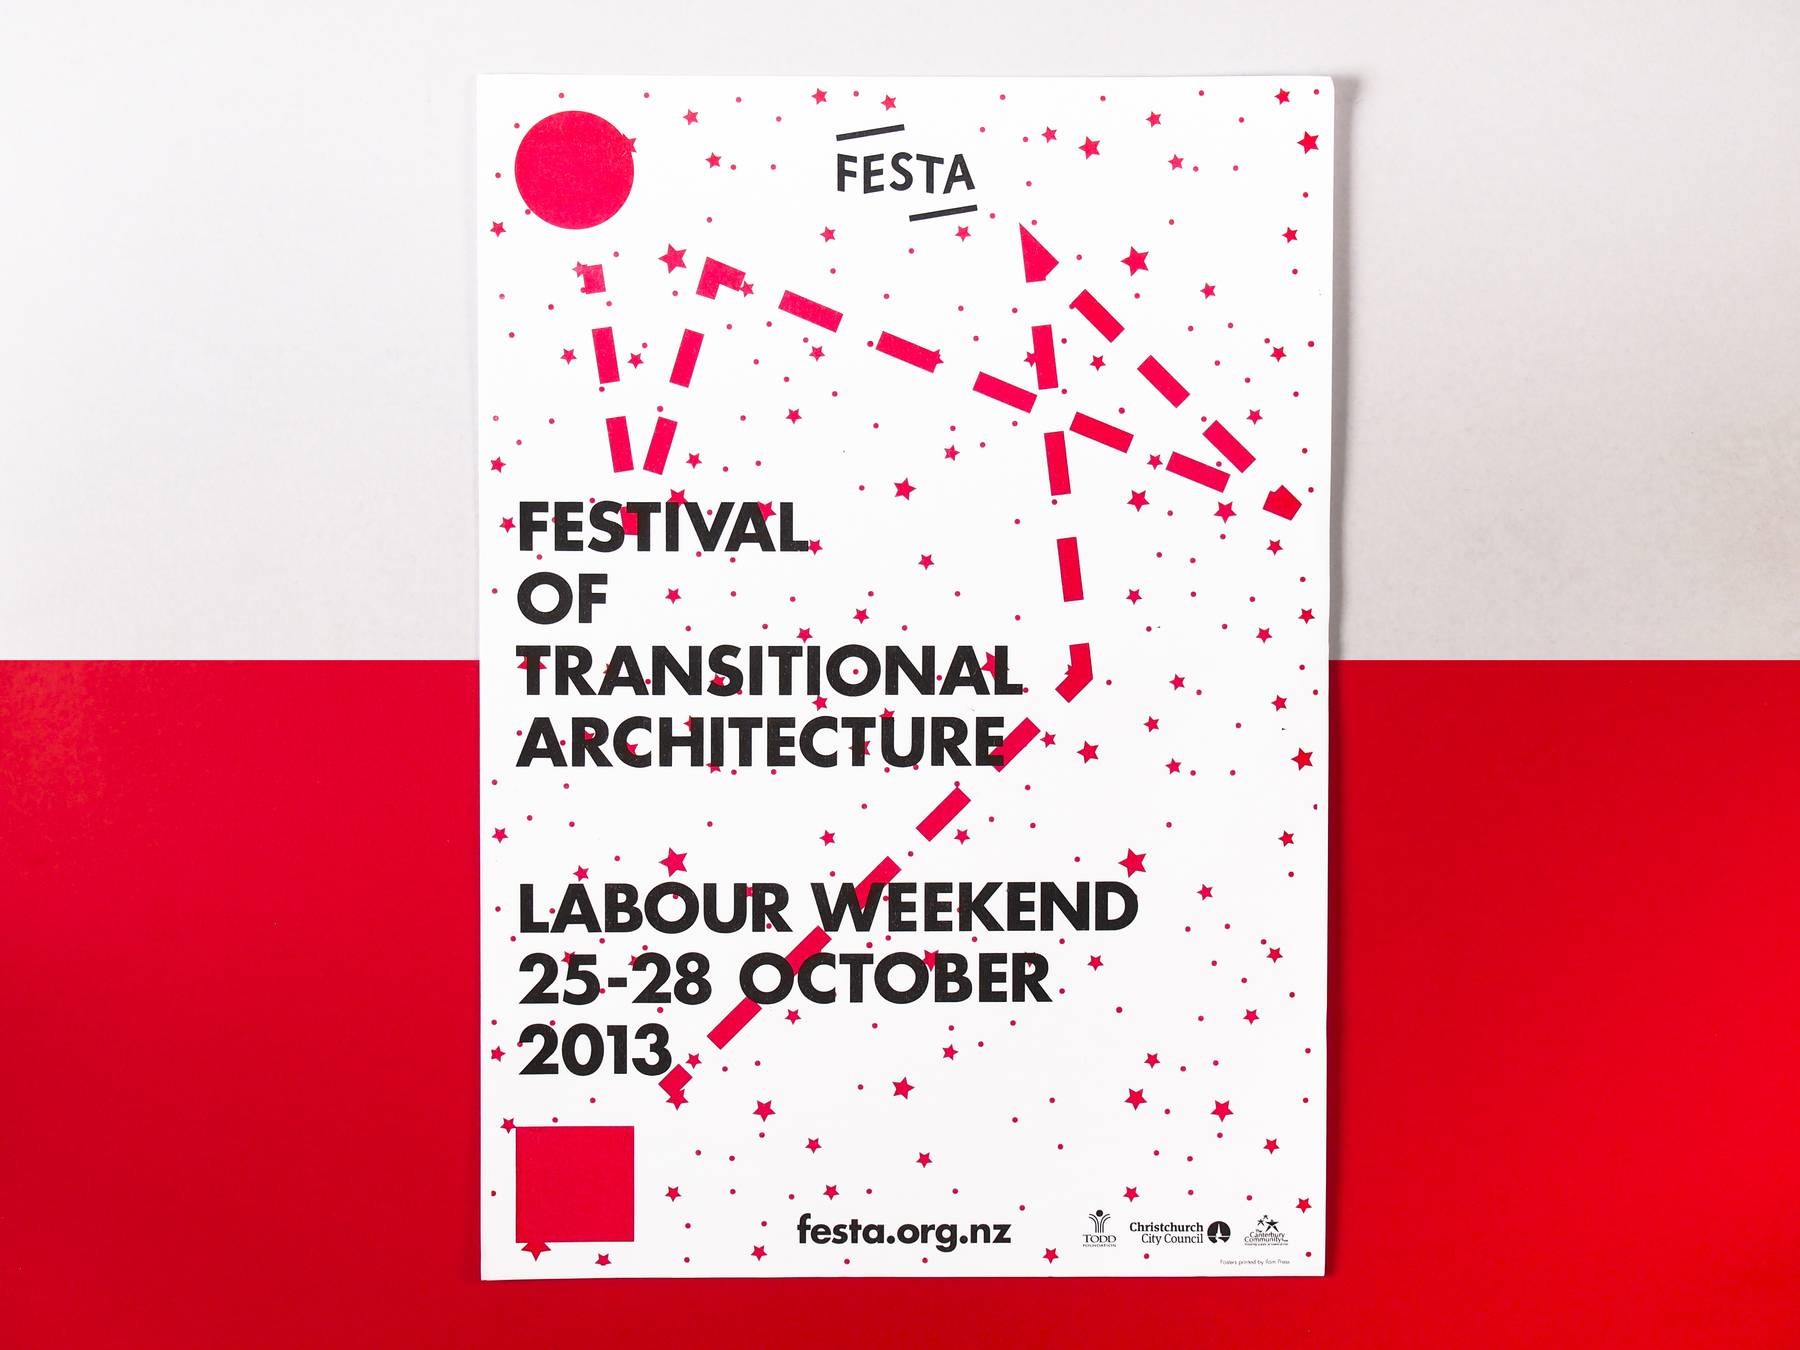 Festival of Transitional Architecture image